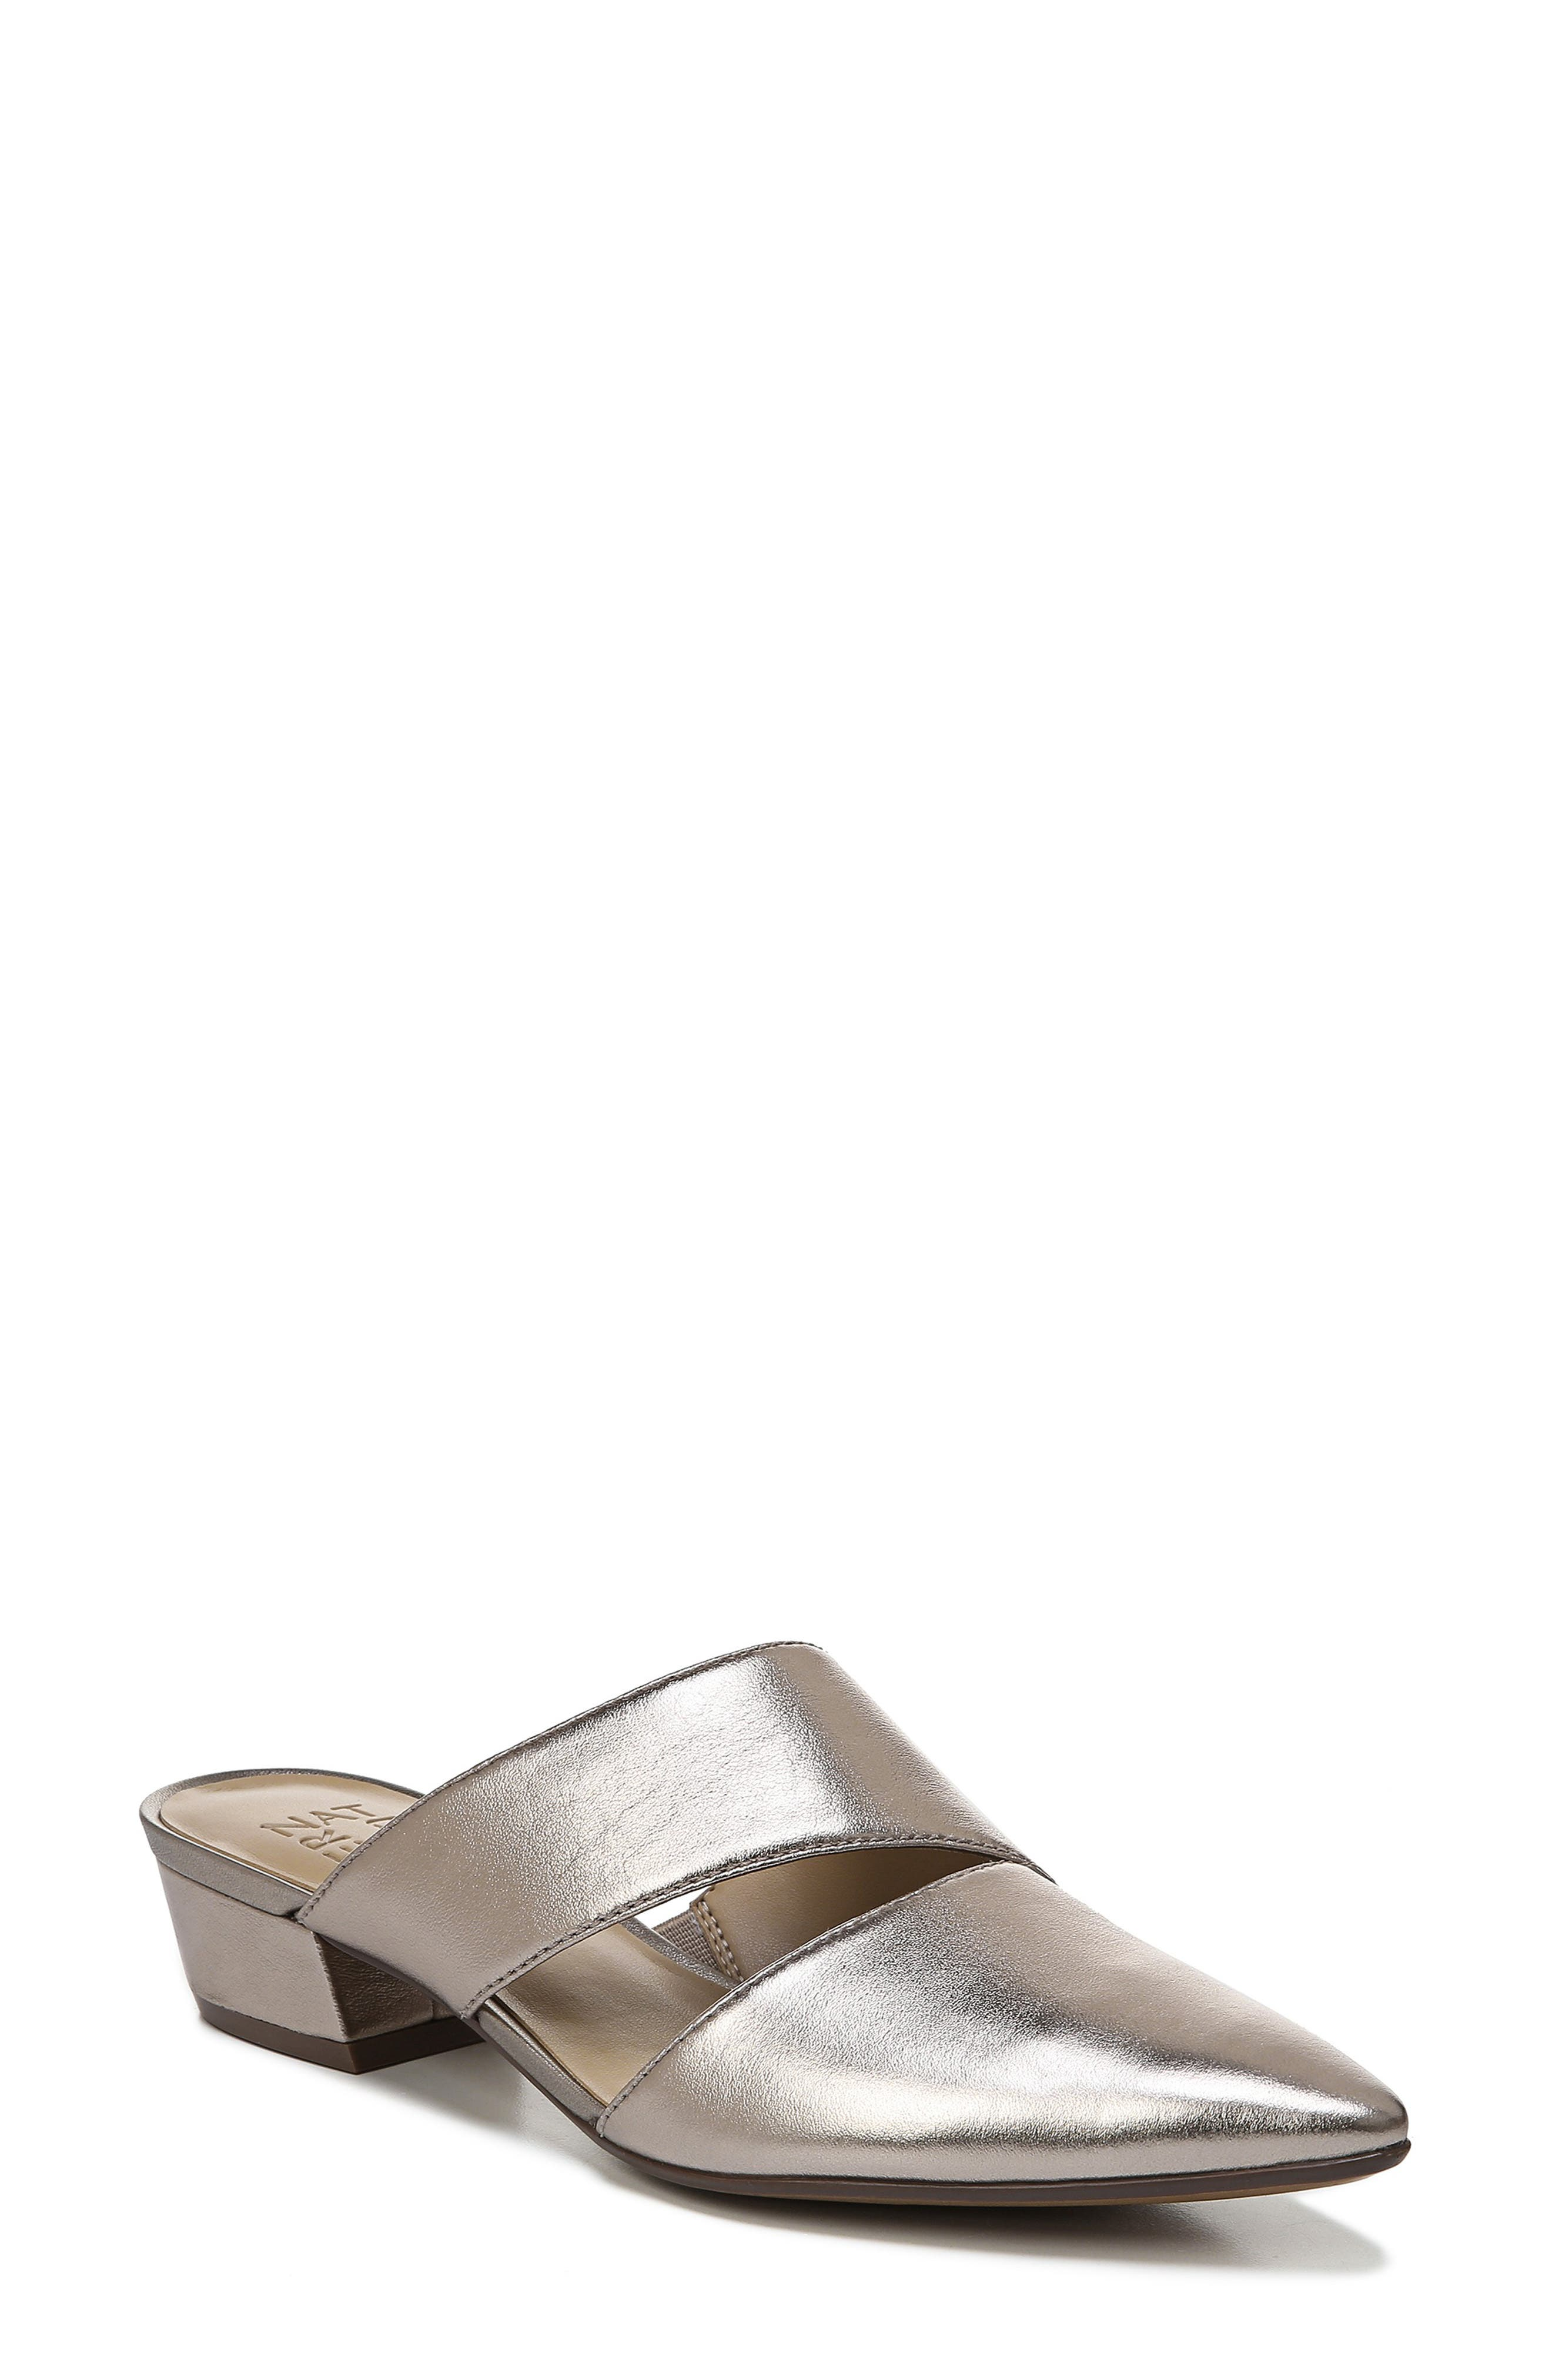 Naturalizer Bev Pointy Toe Mule- Brown